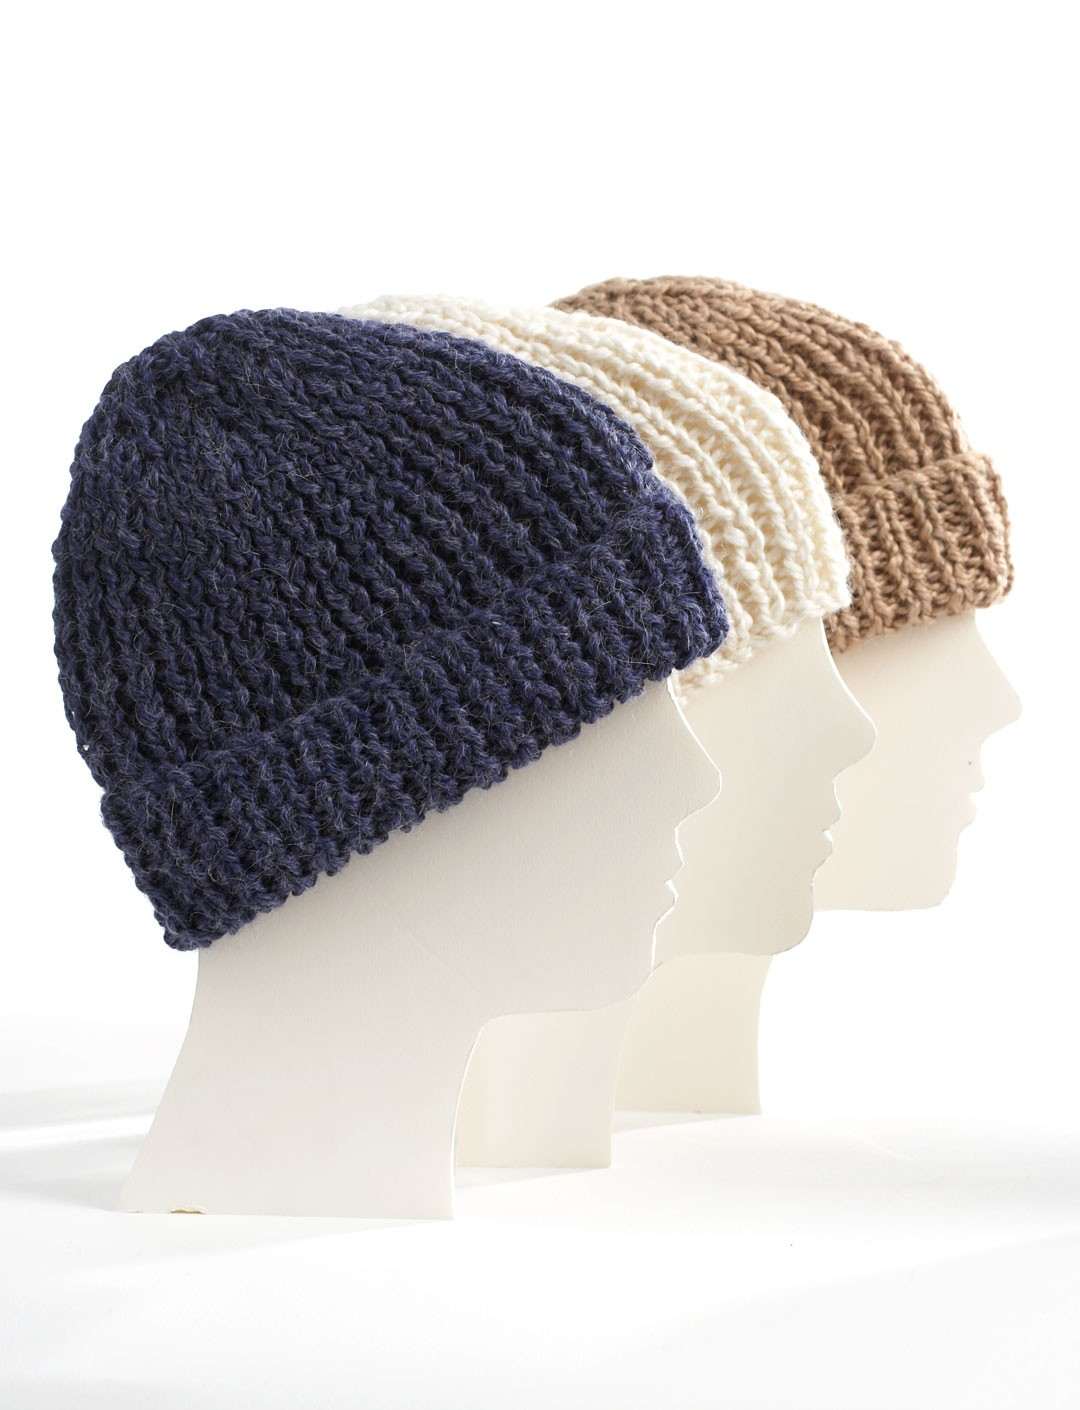 Knitting Pattern Toque : Bernat Knit Family Toques, Knit Pattern Yarnspirations